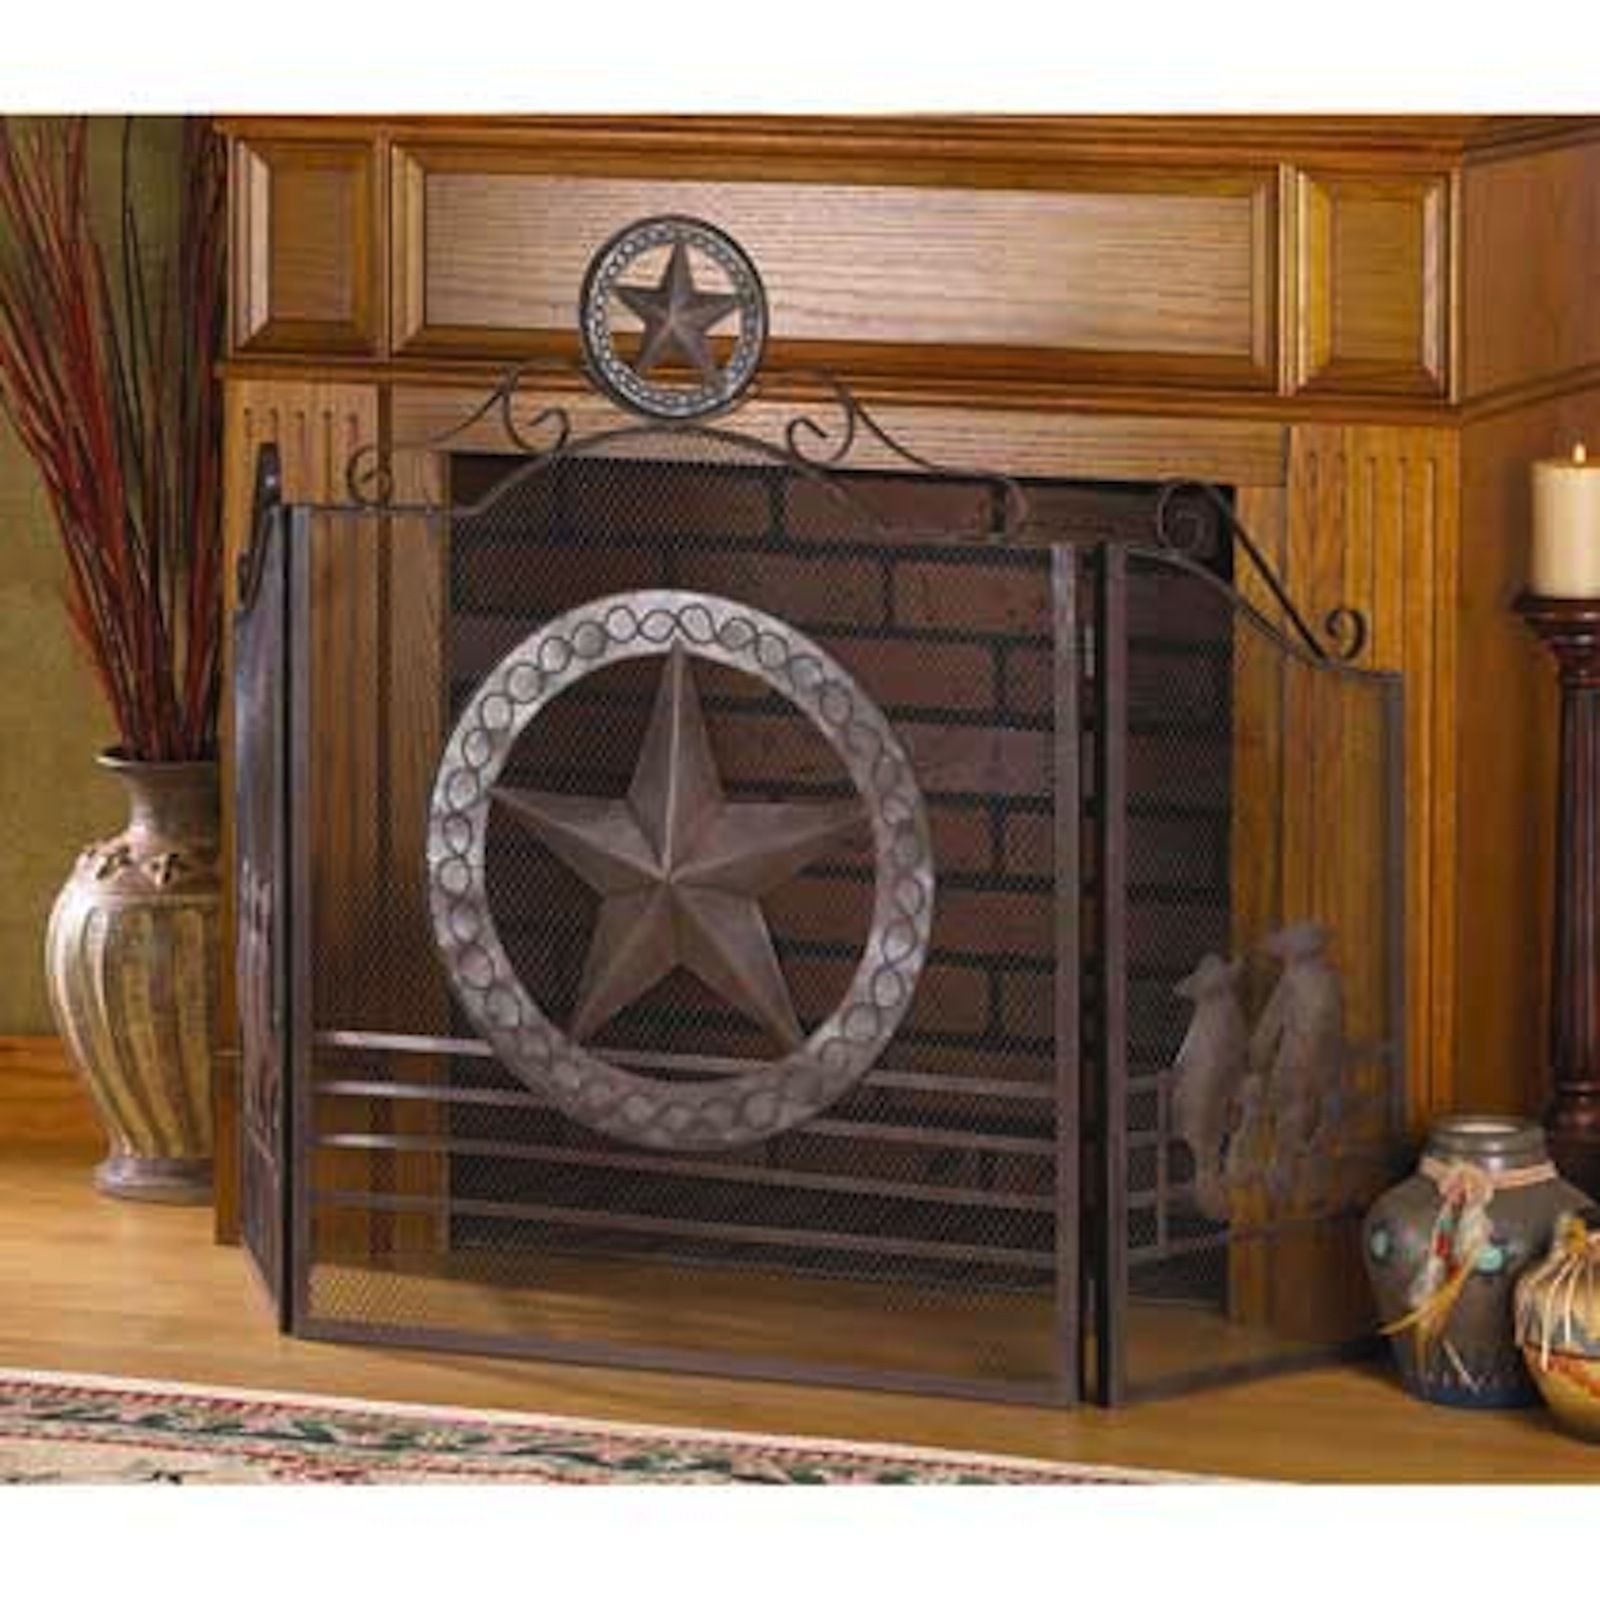 Texas Style Fireplace Screen Fire Place Divider - New